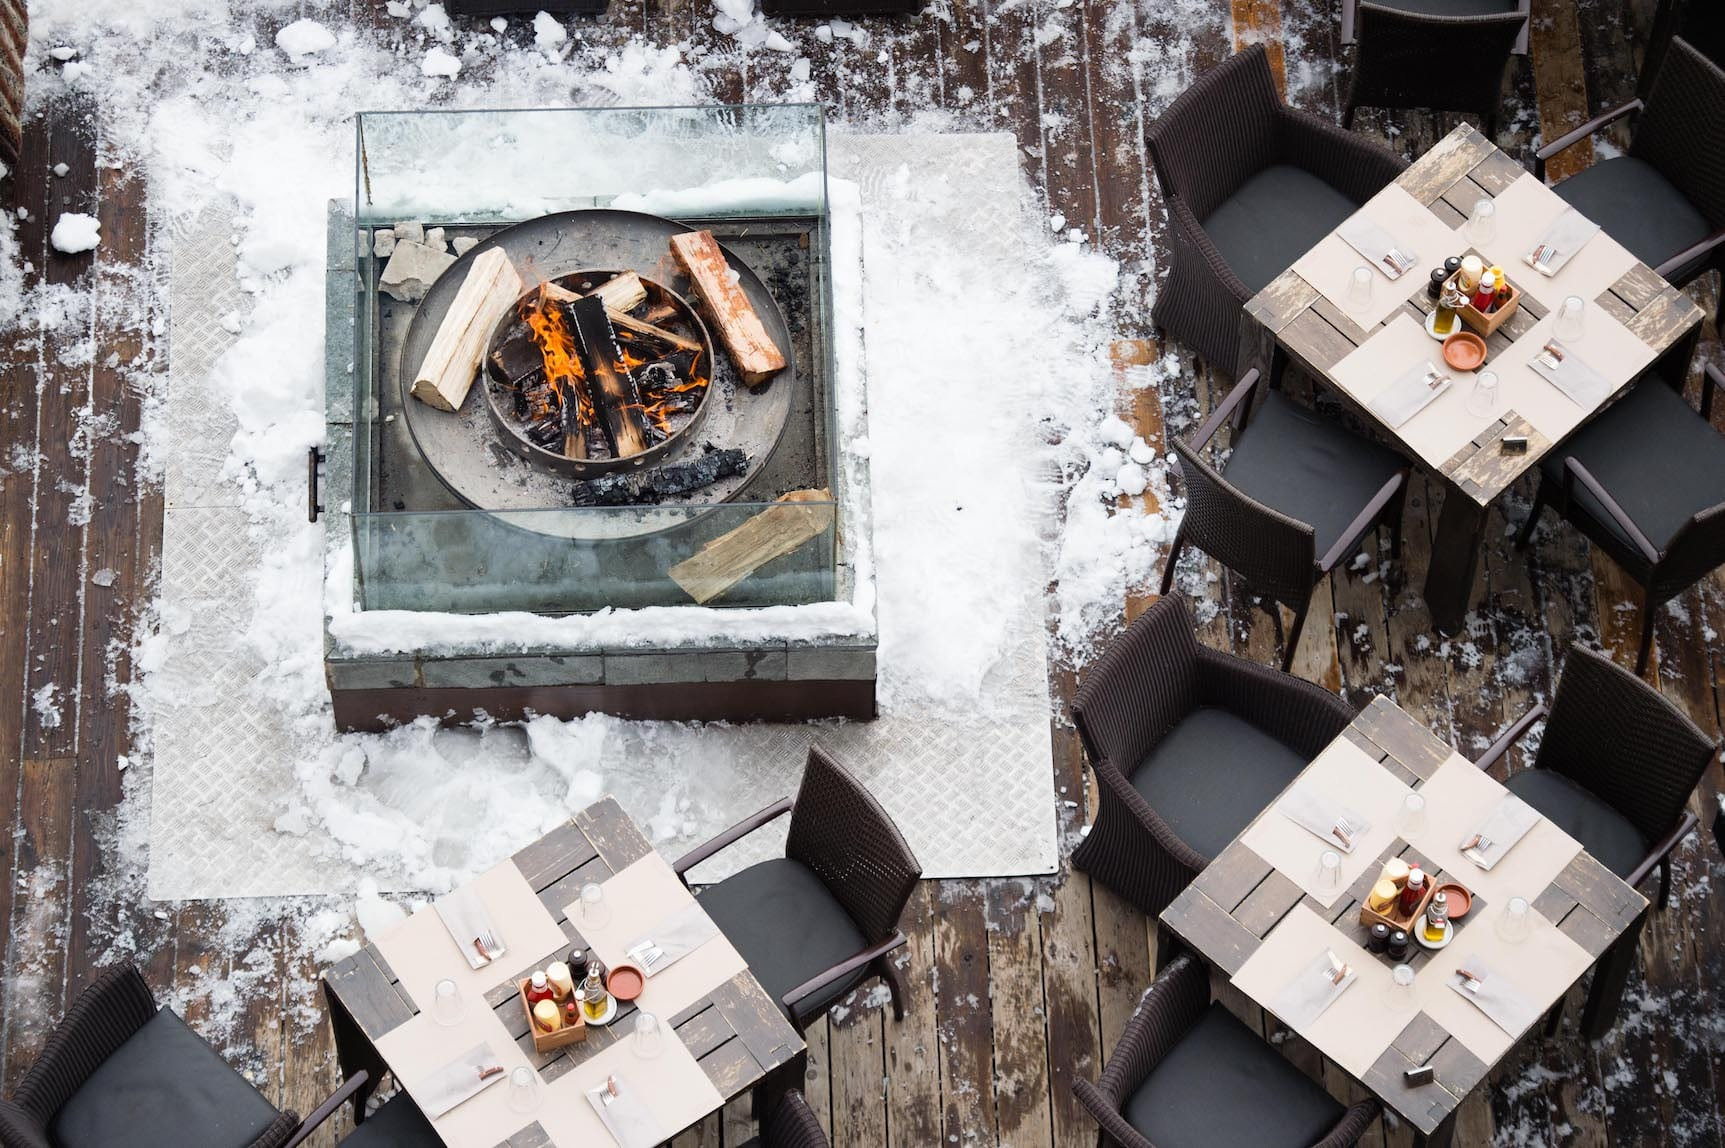 fire-ice-from-above-portetta-amy-murrell-7